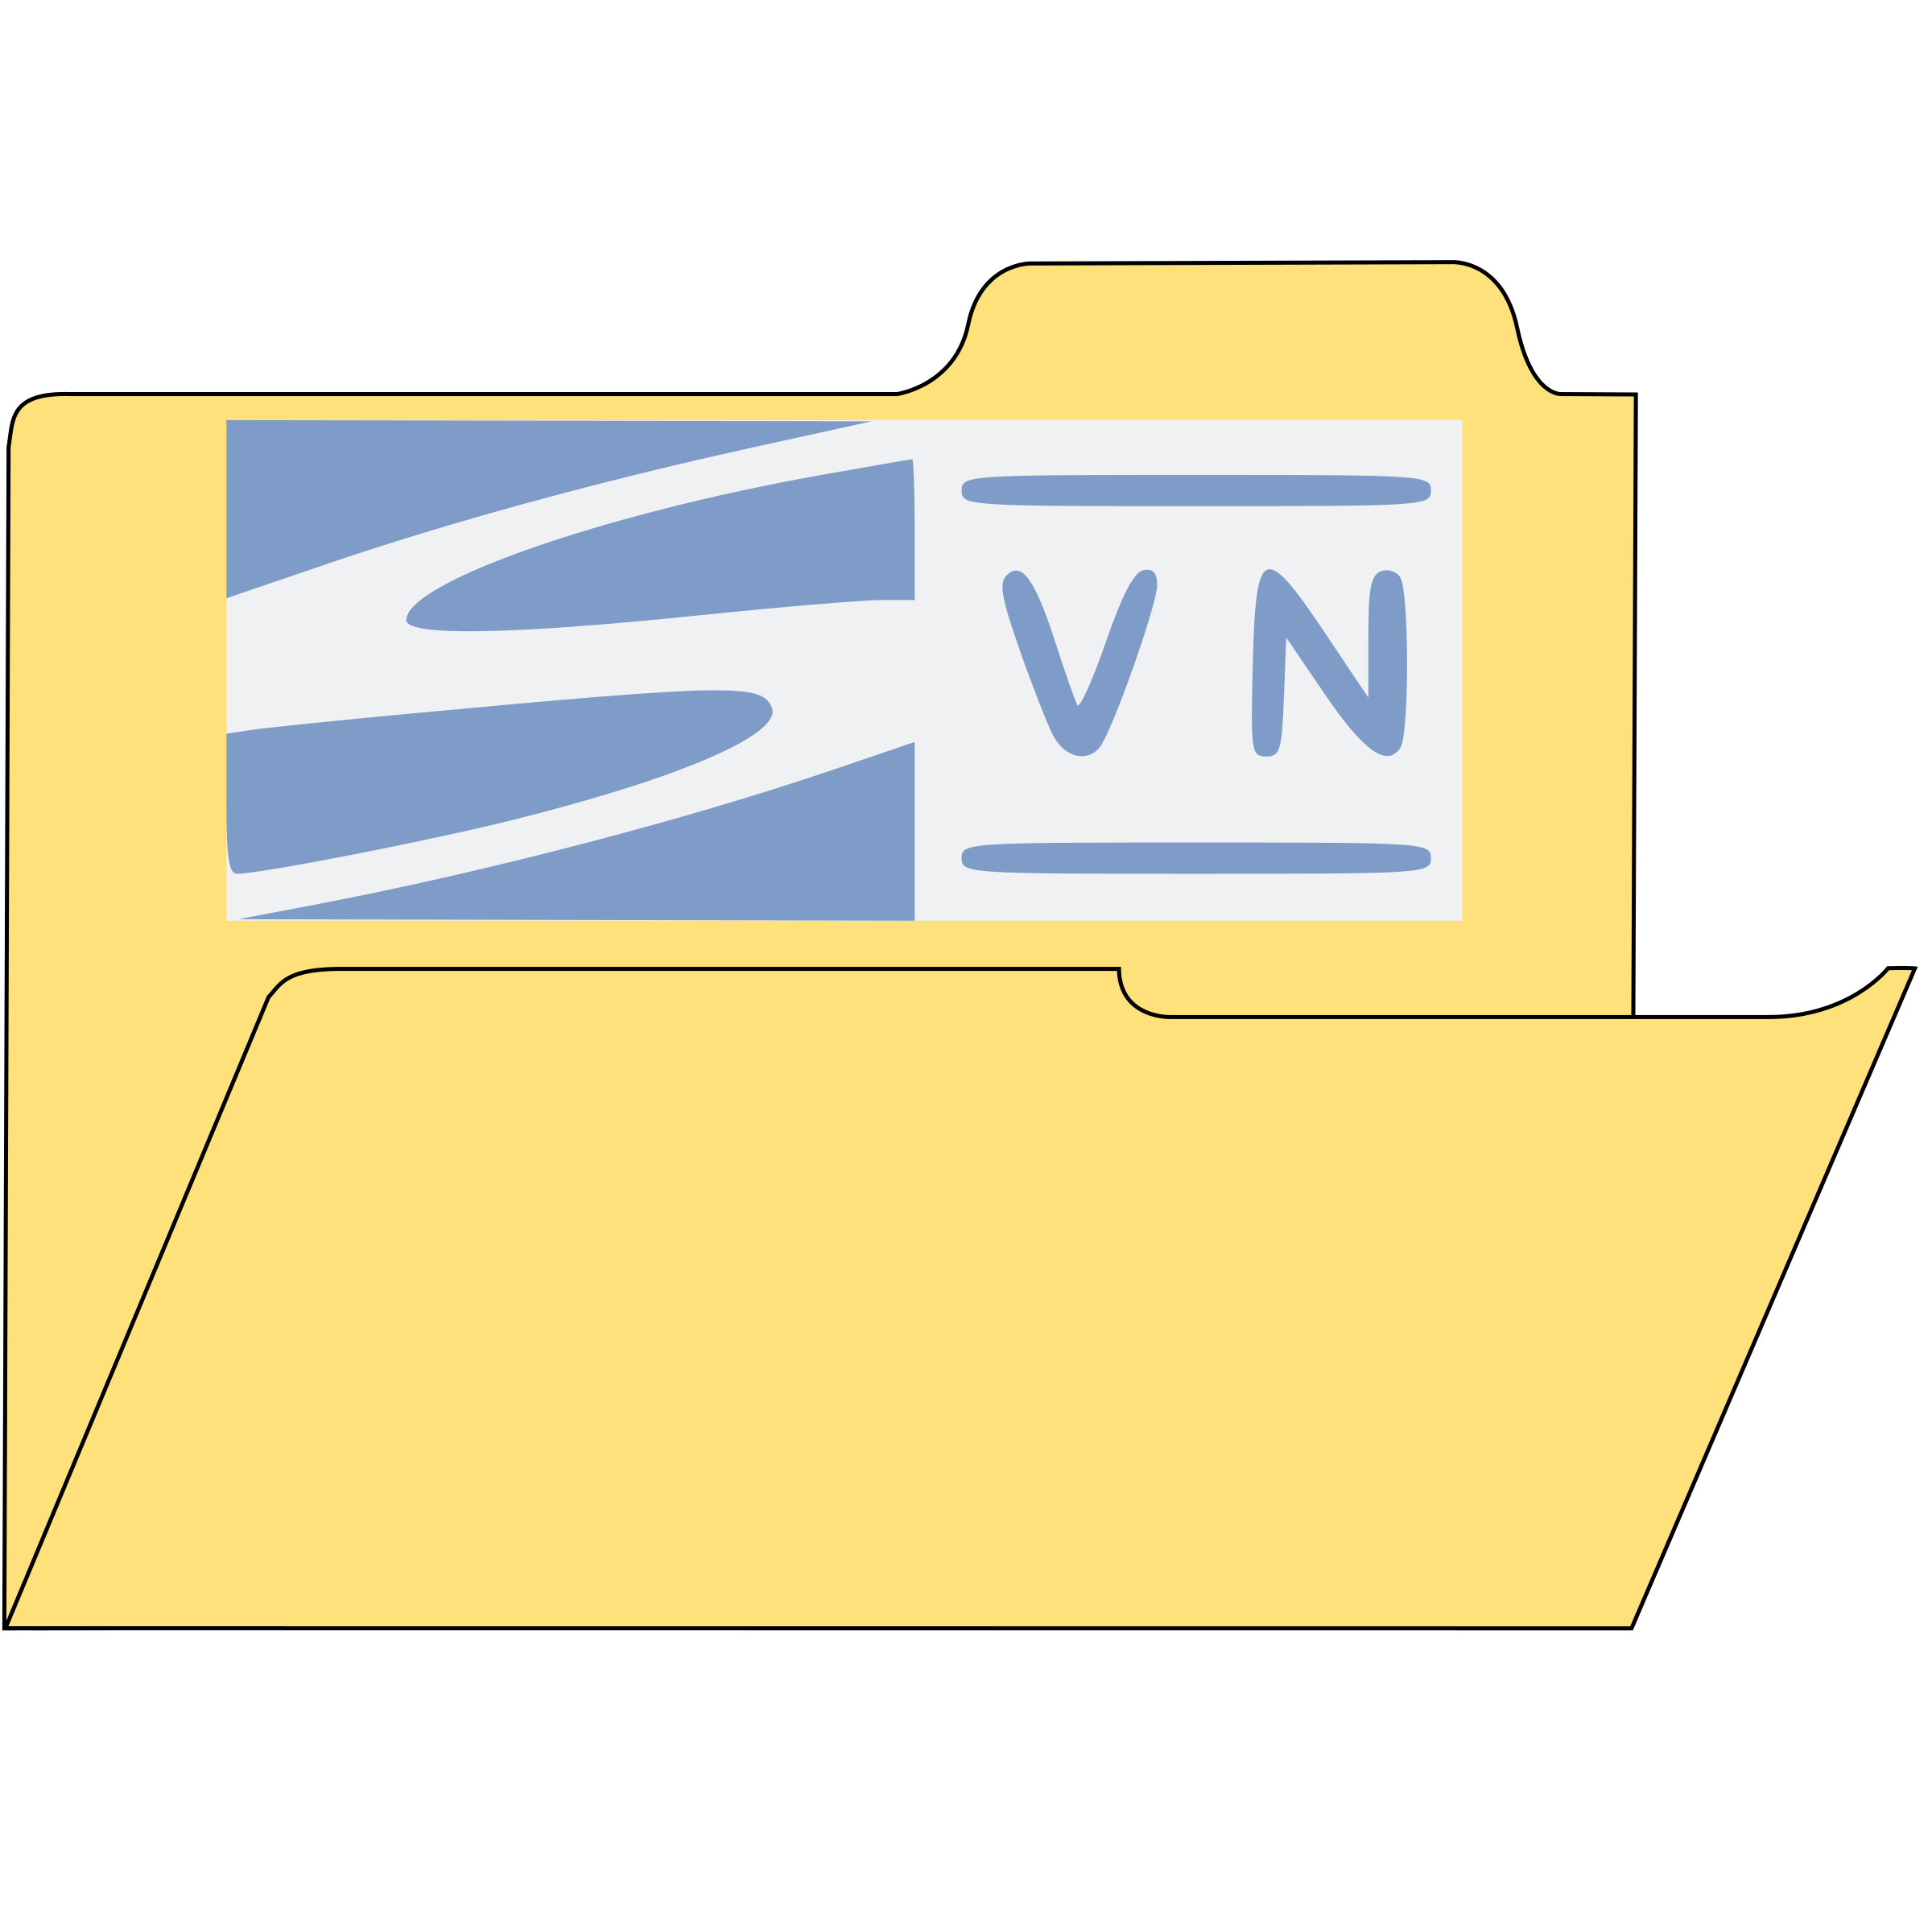 svn directory by computating